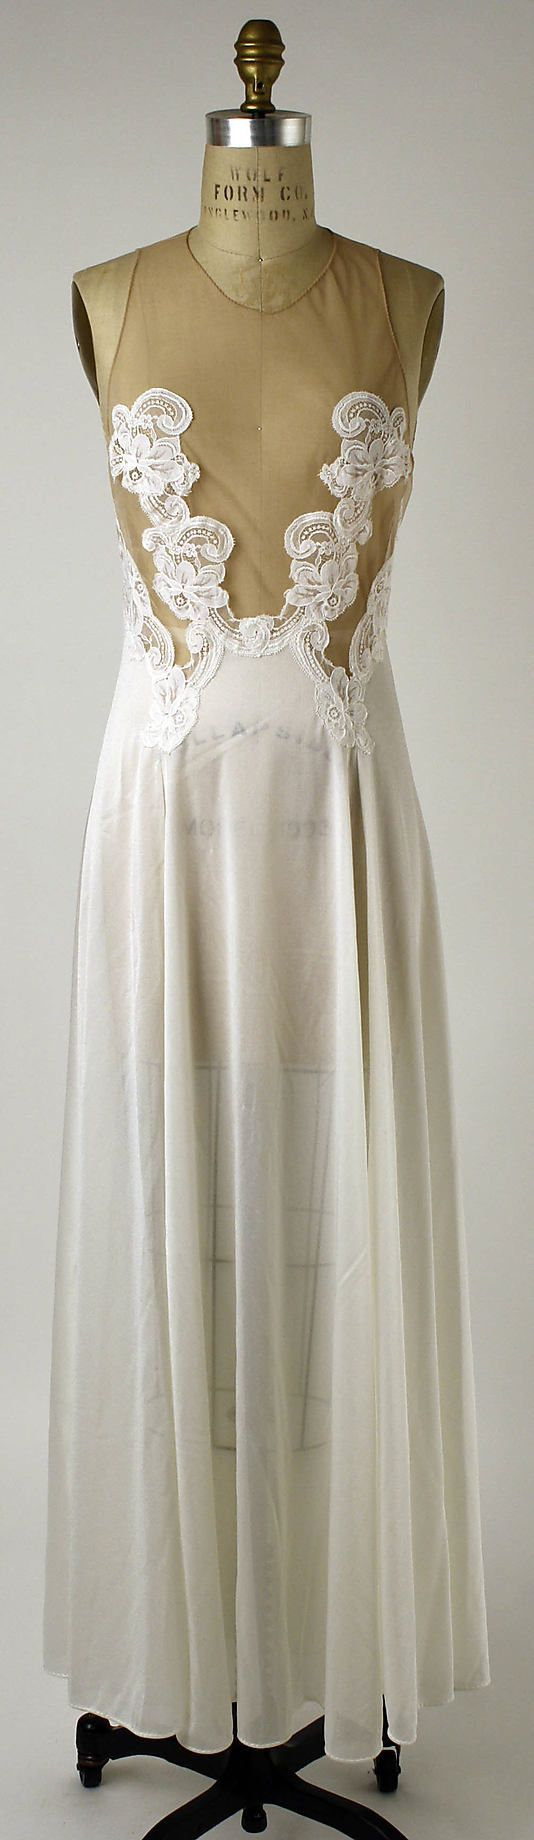 Nightgown,  Formfit Rogers, 1976.